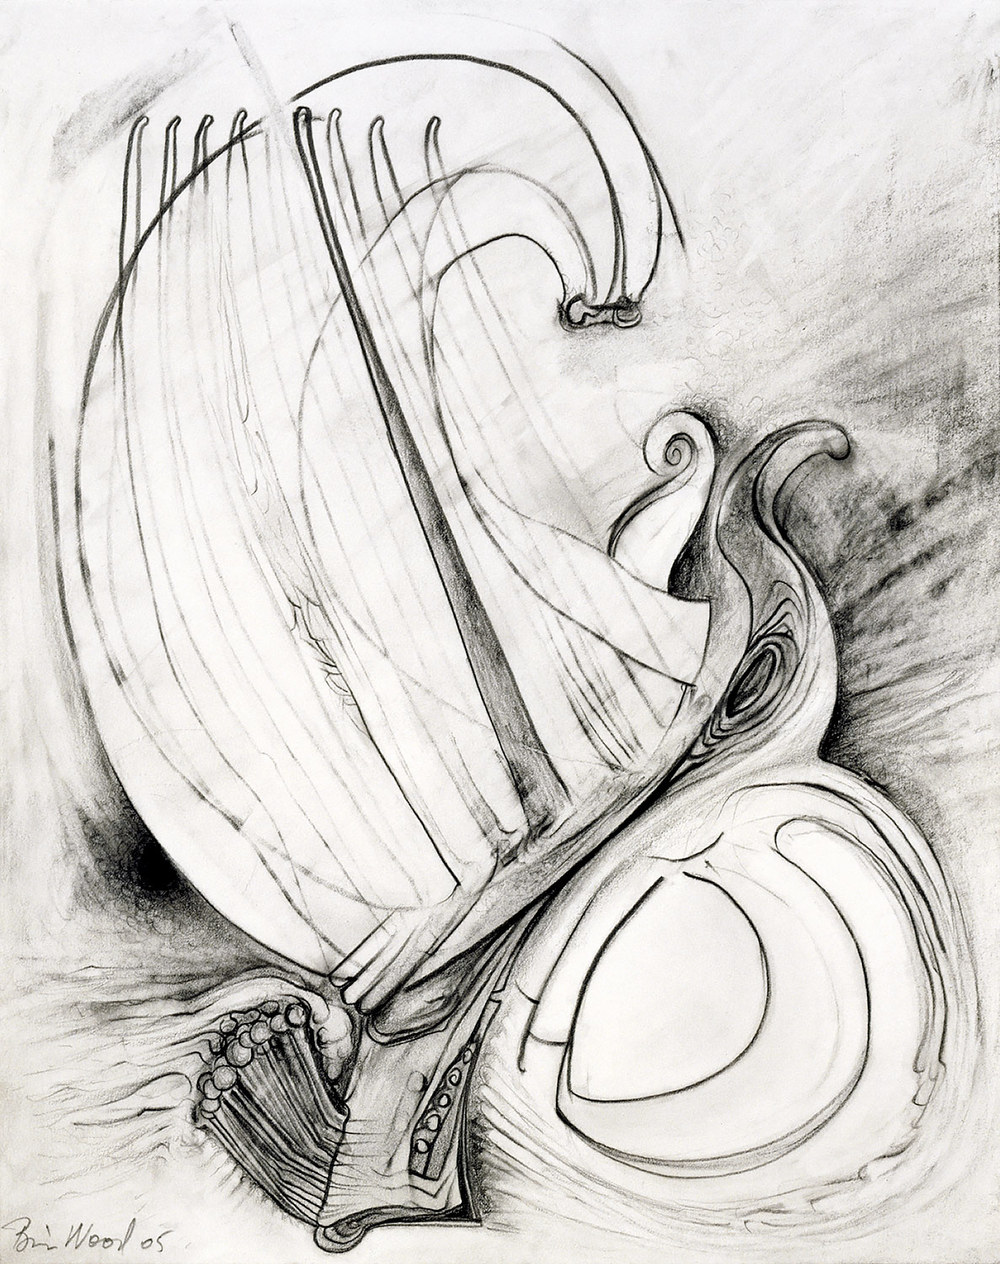 """Brian Wood <br> """"Vent"""" <br> Graphite on paper <br> 14 x 11 in."""